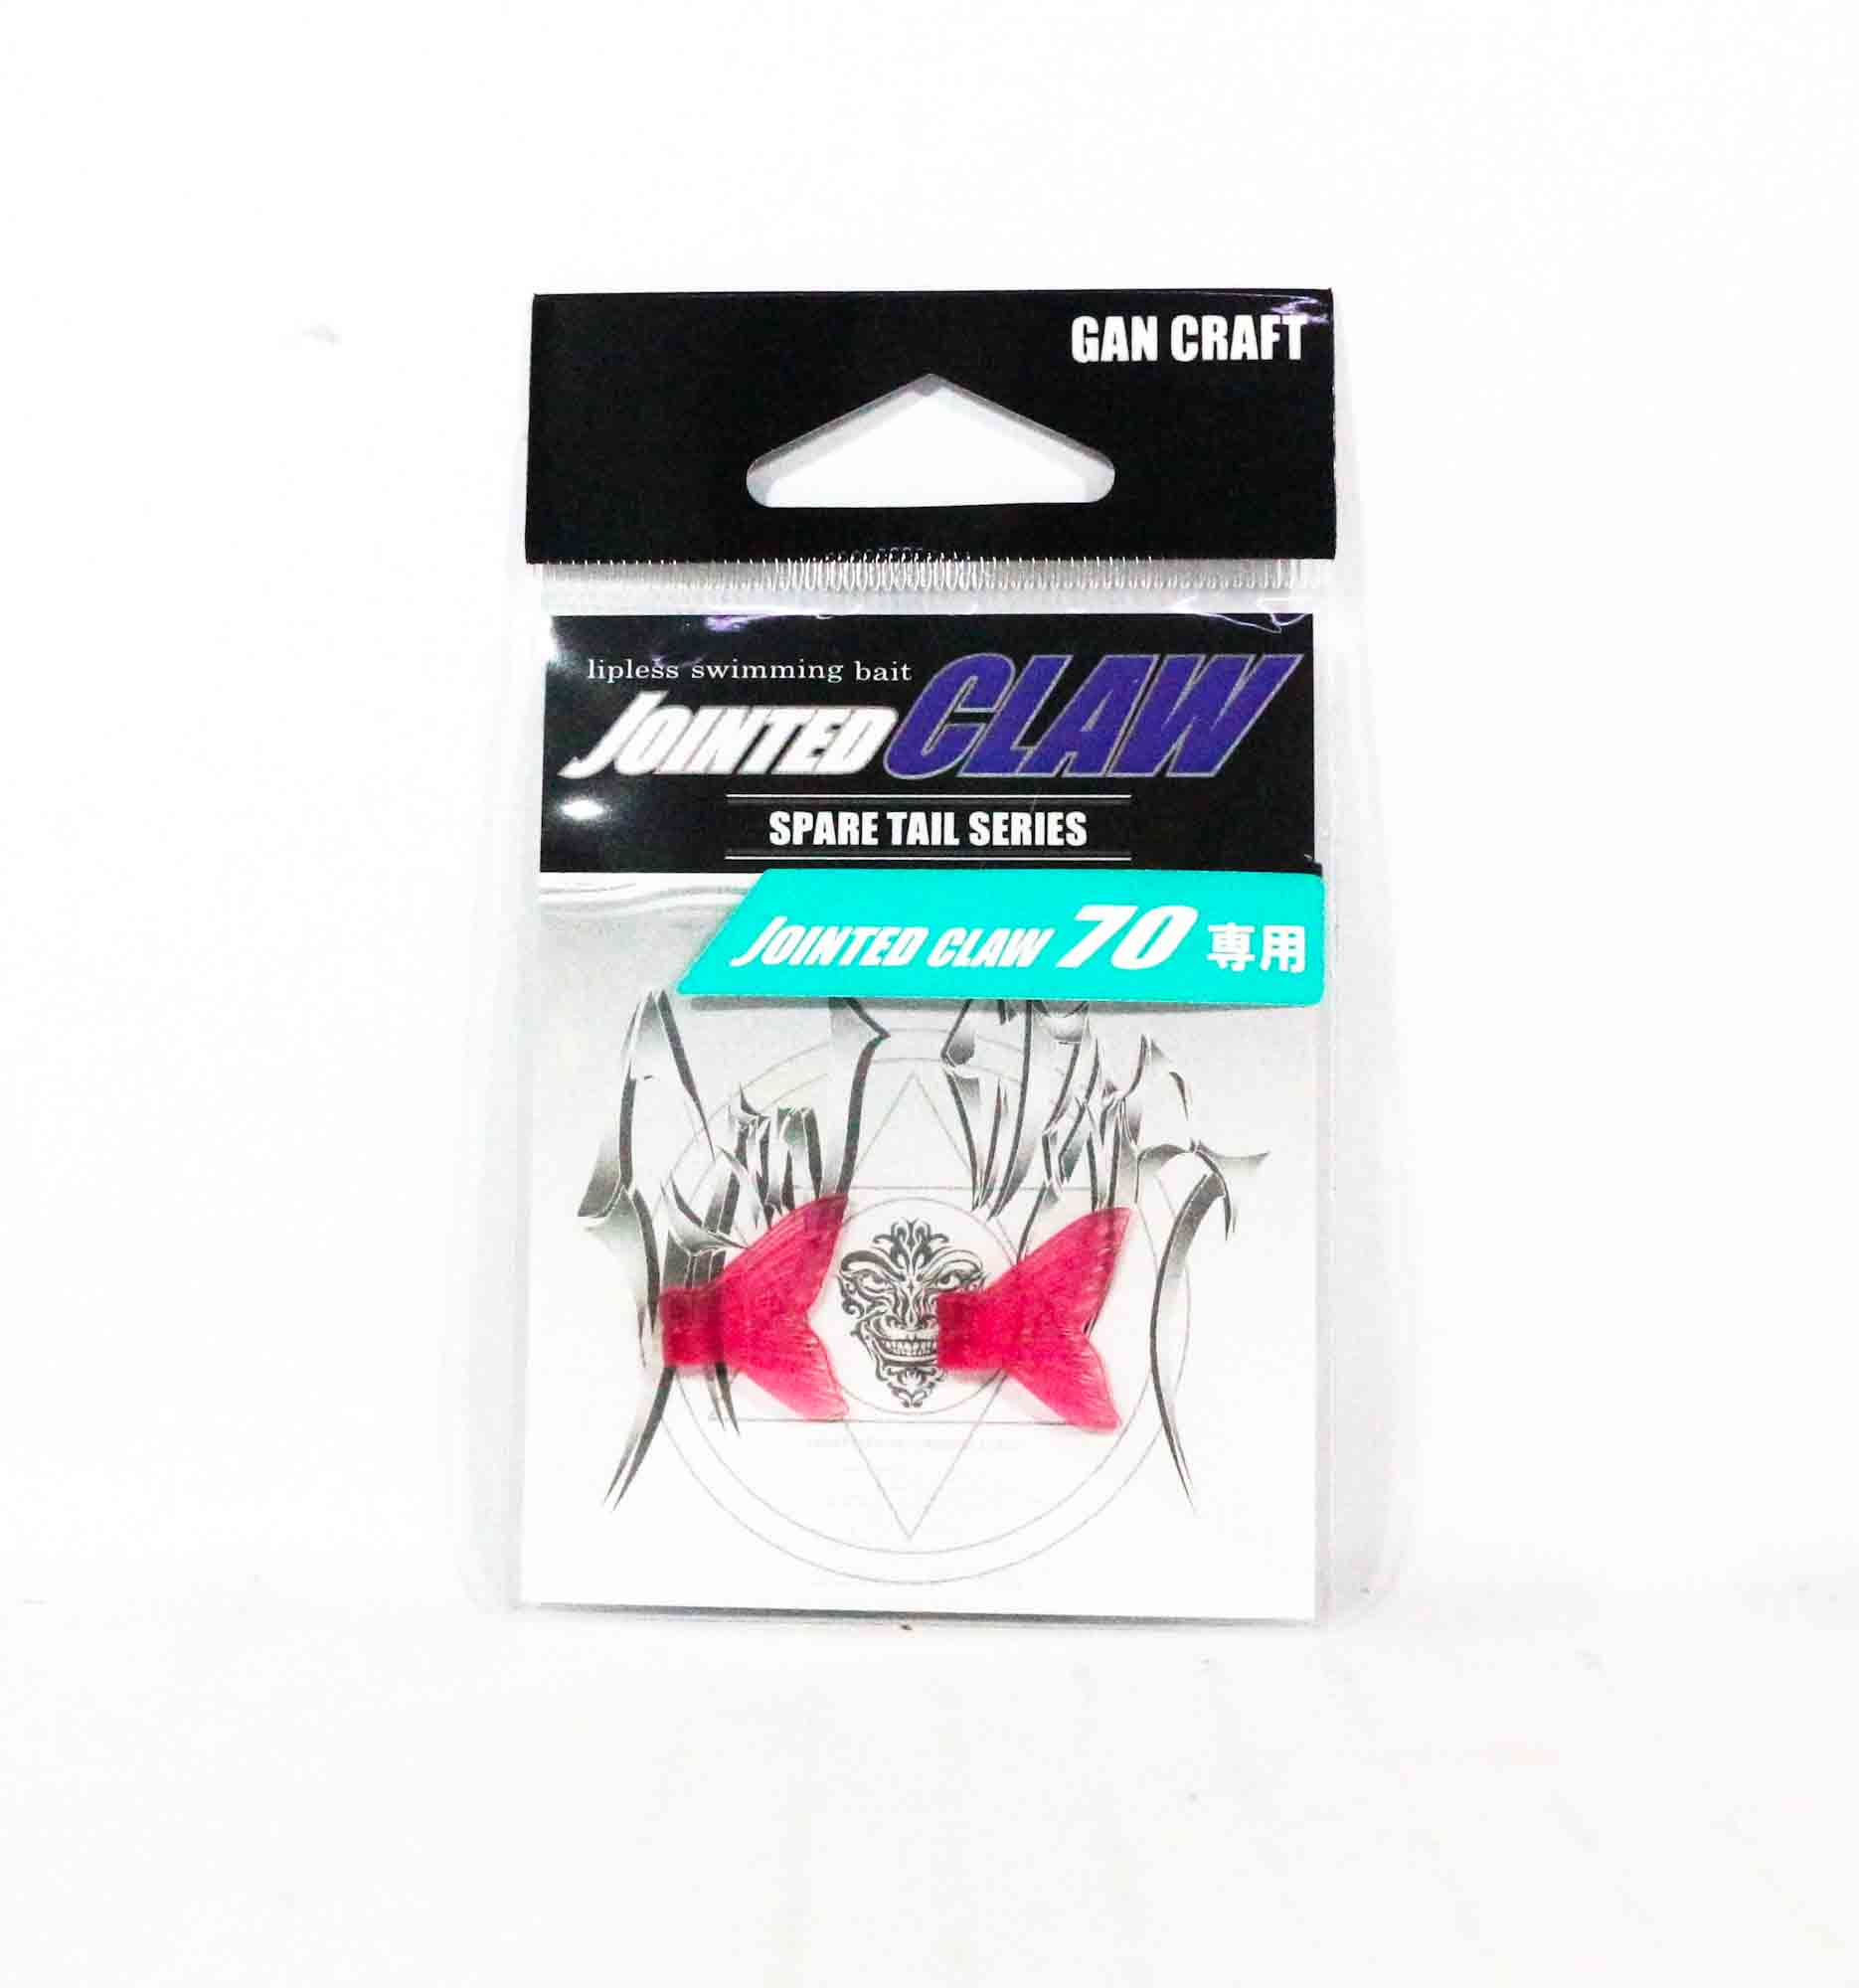 Gan Craft Jointed Claw 70 Spare Tail 05 (7273)